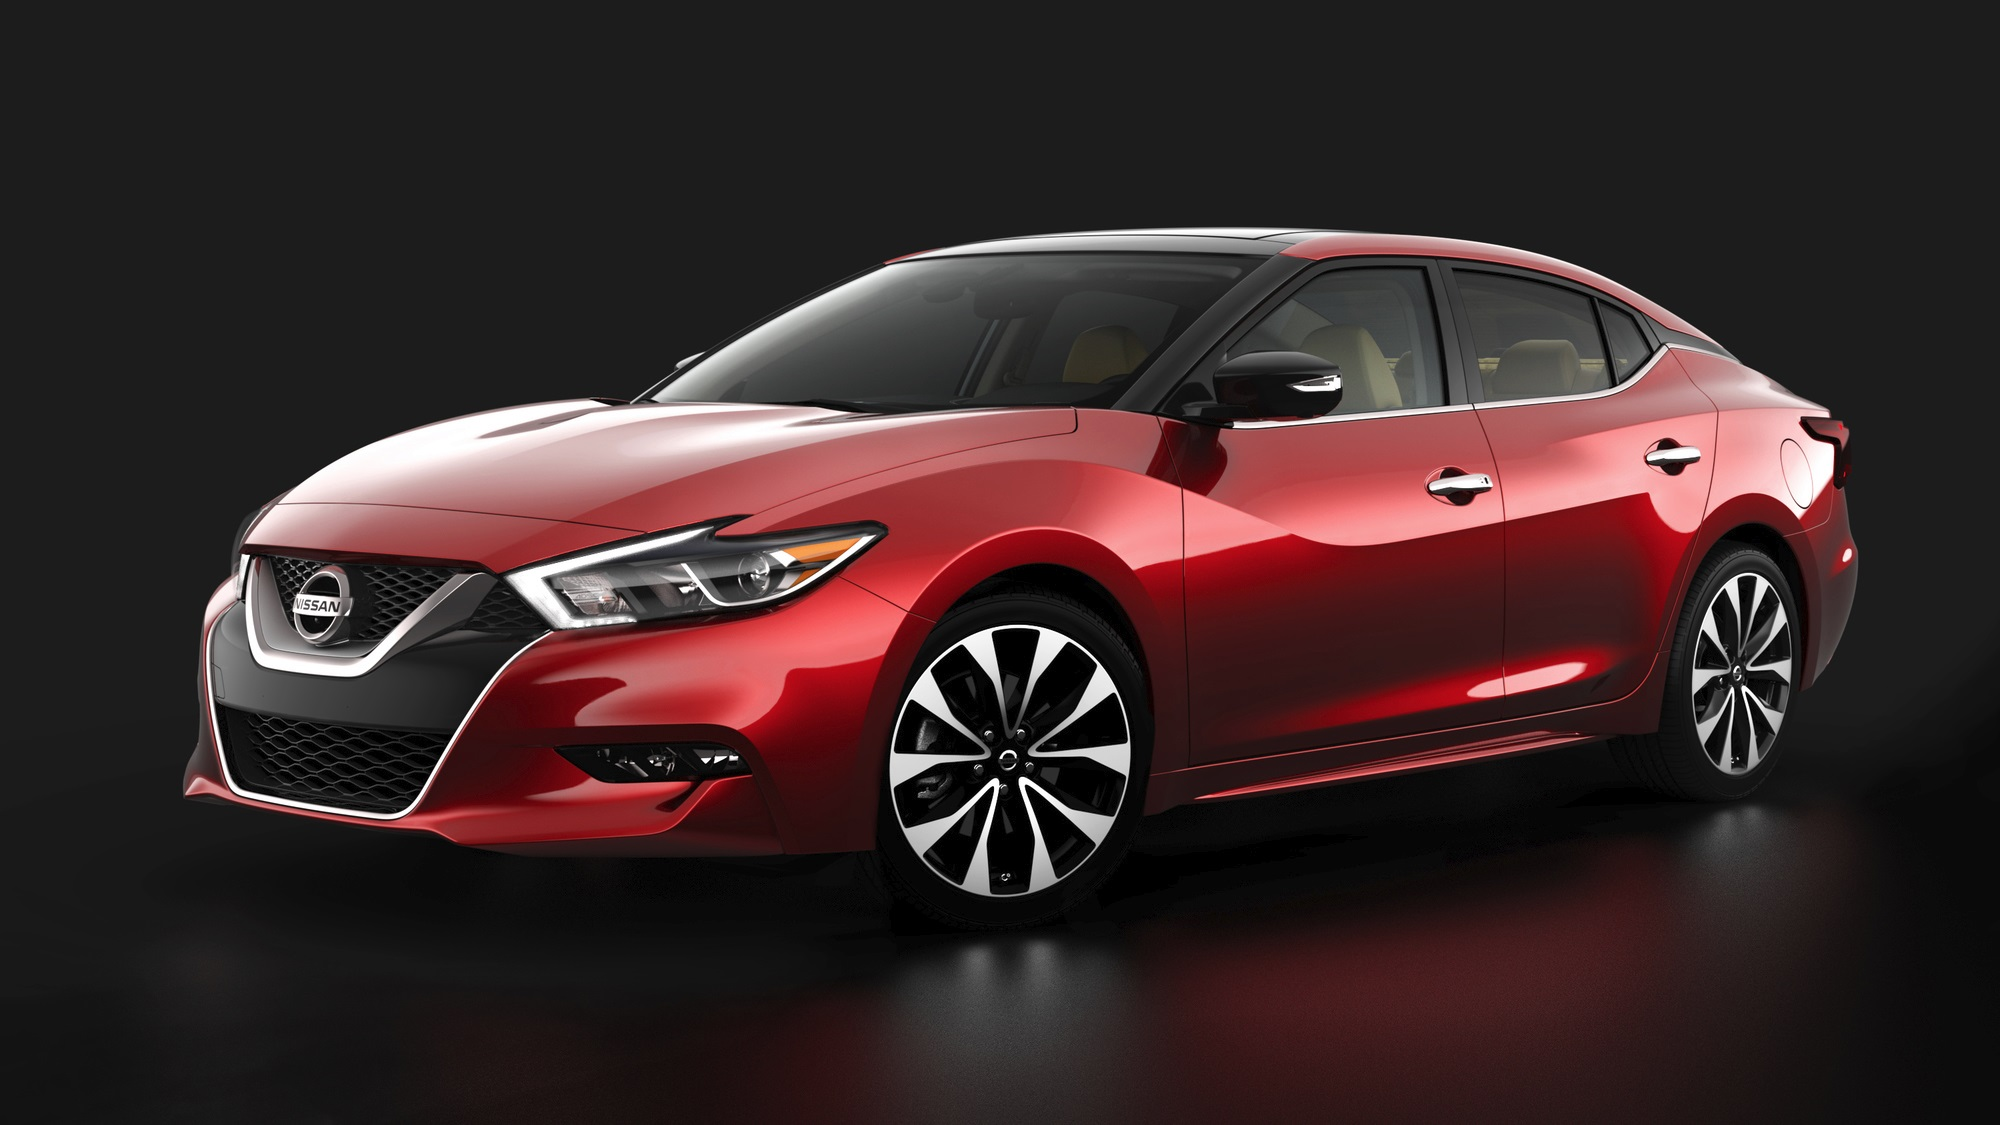 New Nissan Maxima >> Nissan In Smyrna And Decherd To Produce The New Maxima